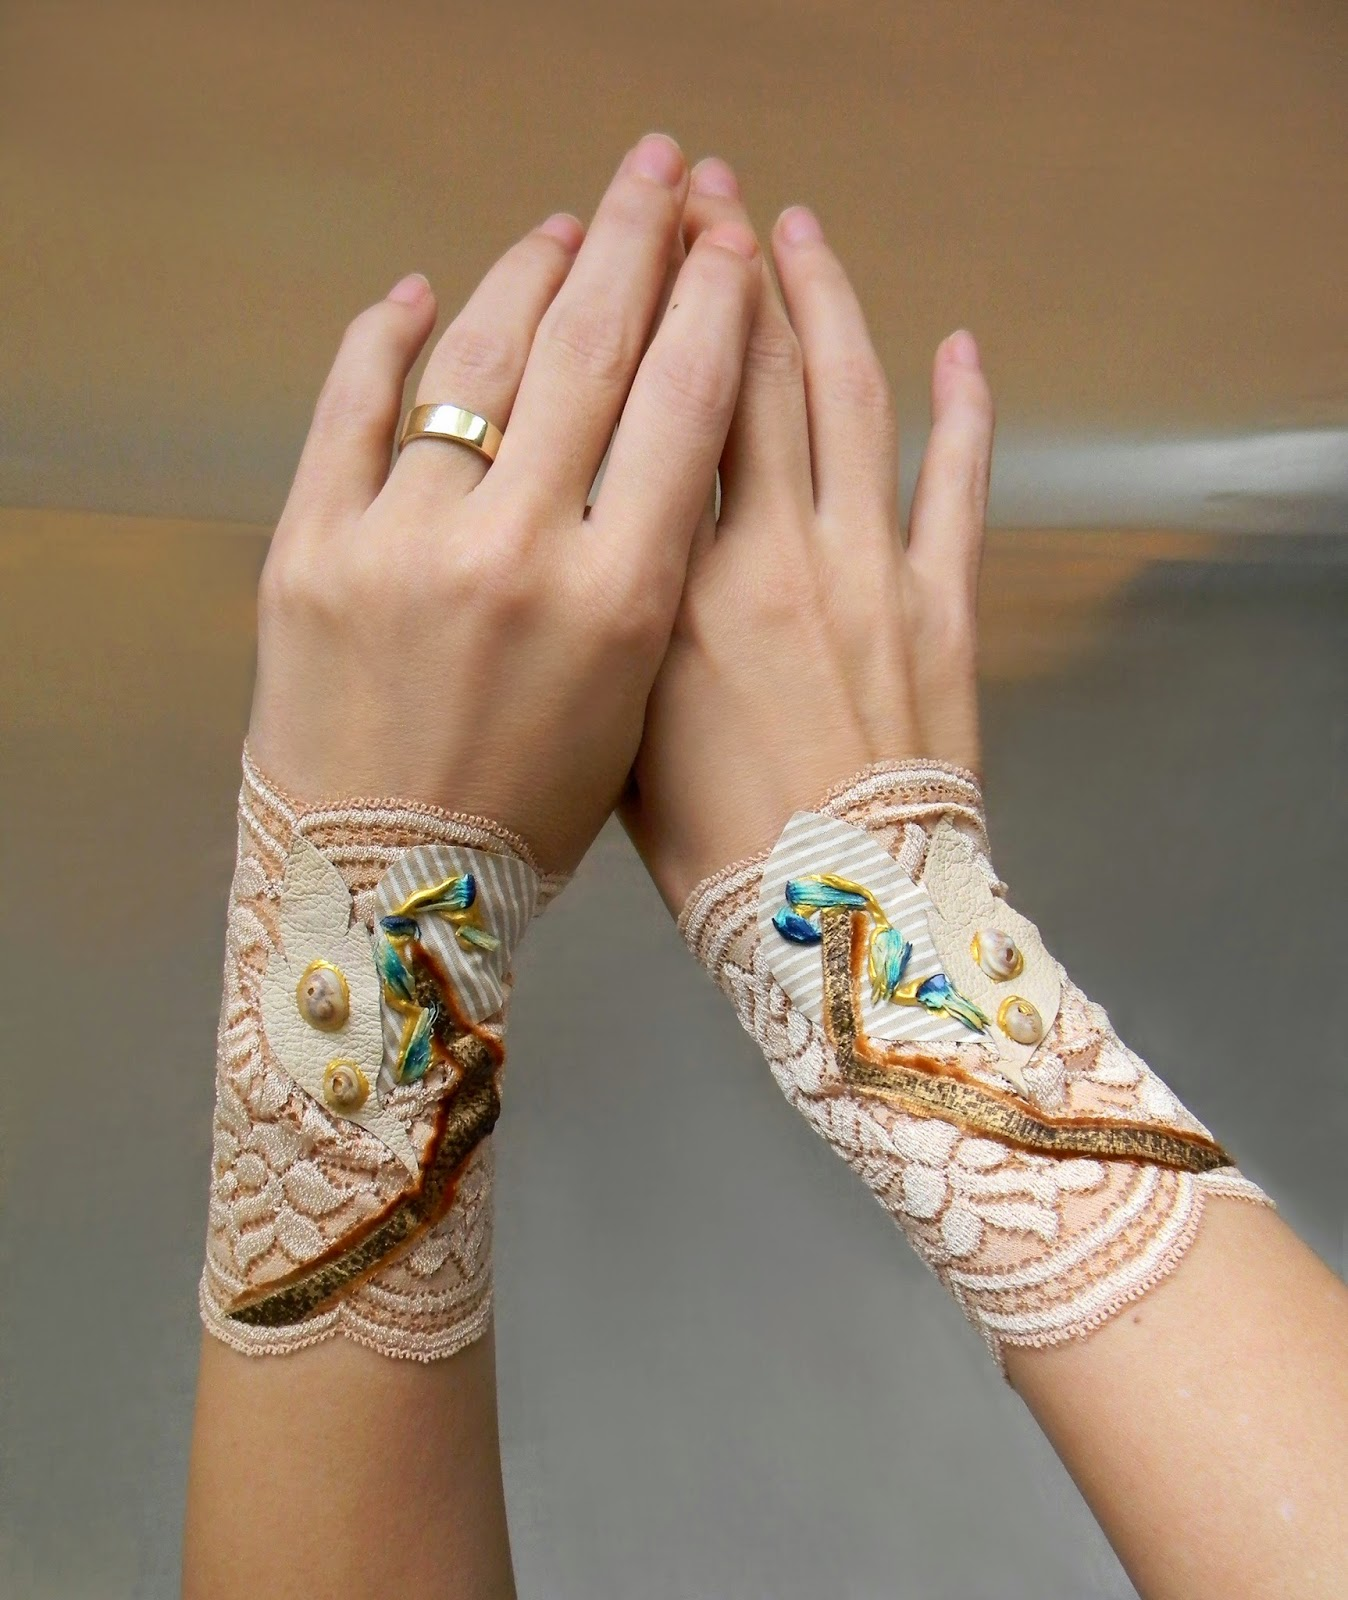 wriat cuffs